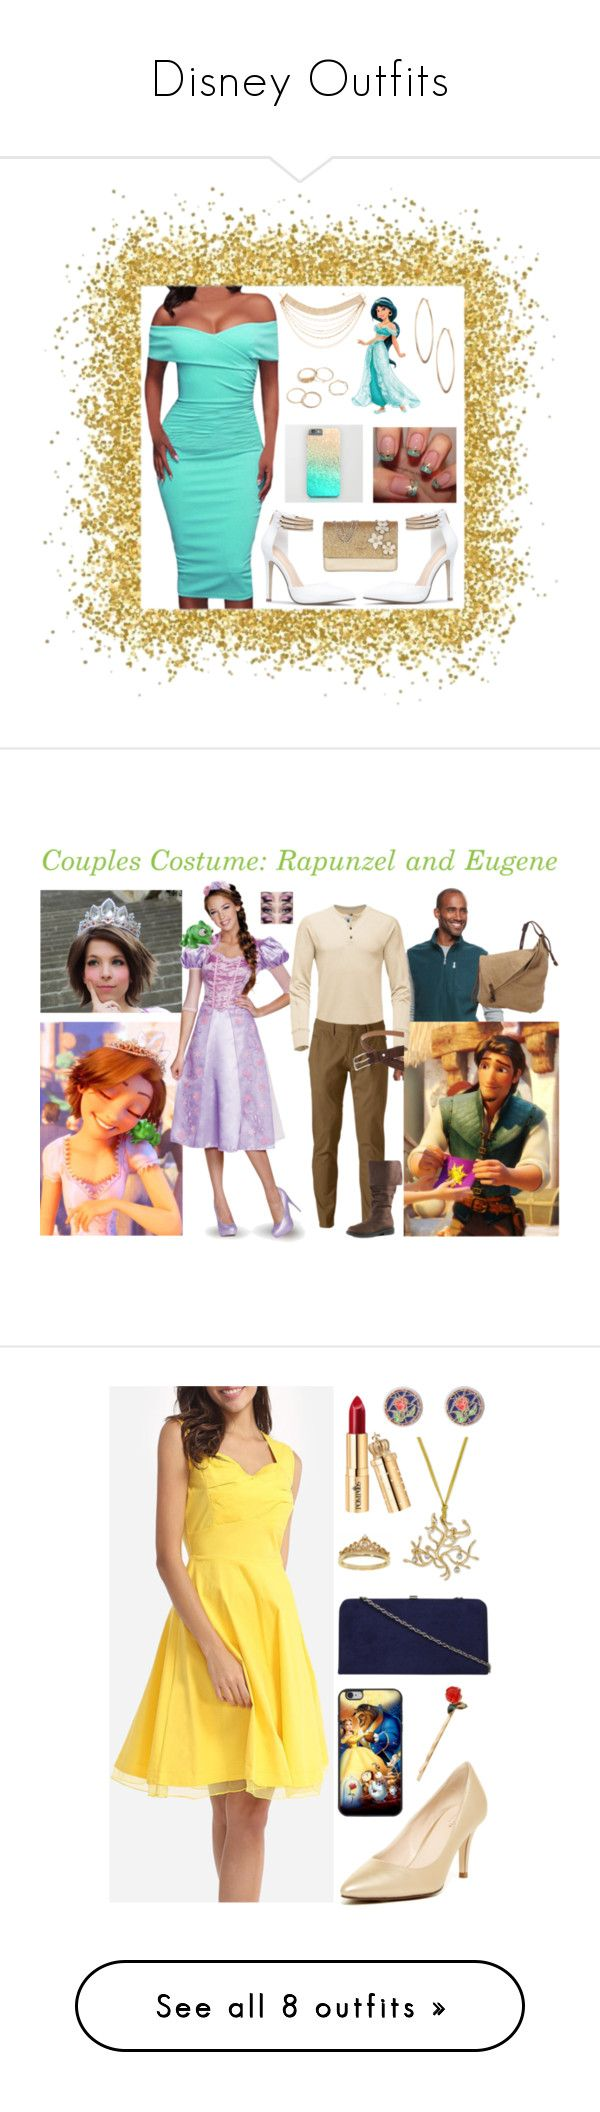 """""""Disney Outfits"""" by sbello ❤ liked on Polyvore featuring Lydell NYC, Disney, GUESS, modern, disney, jasmine, Disneyprincess, ModernJasmine, disneyjasmine and Croft & Barrow"""